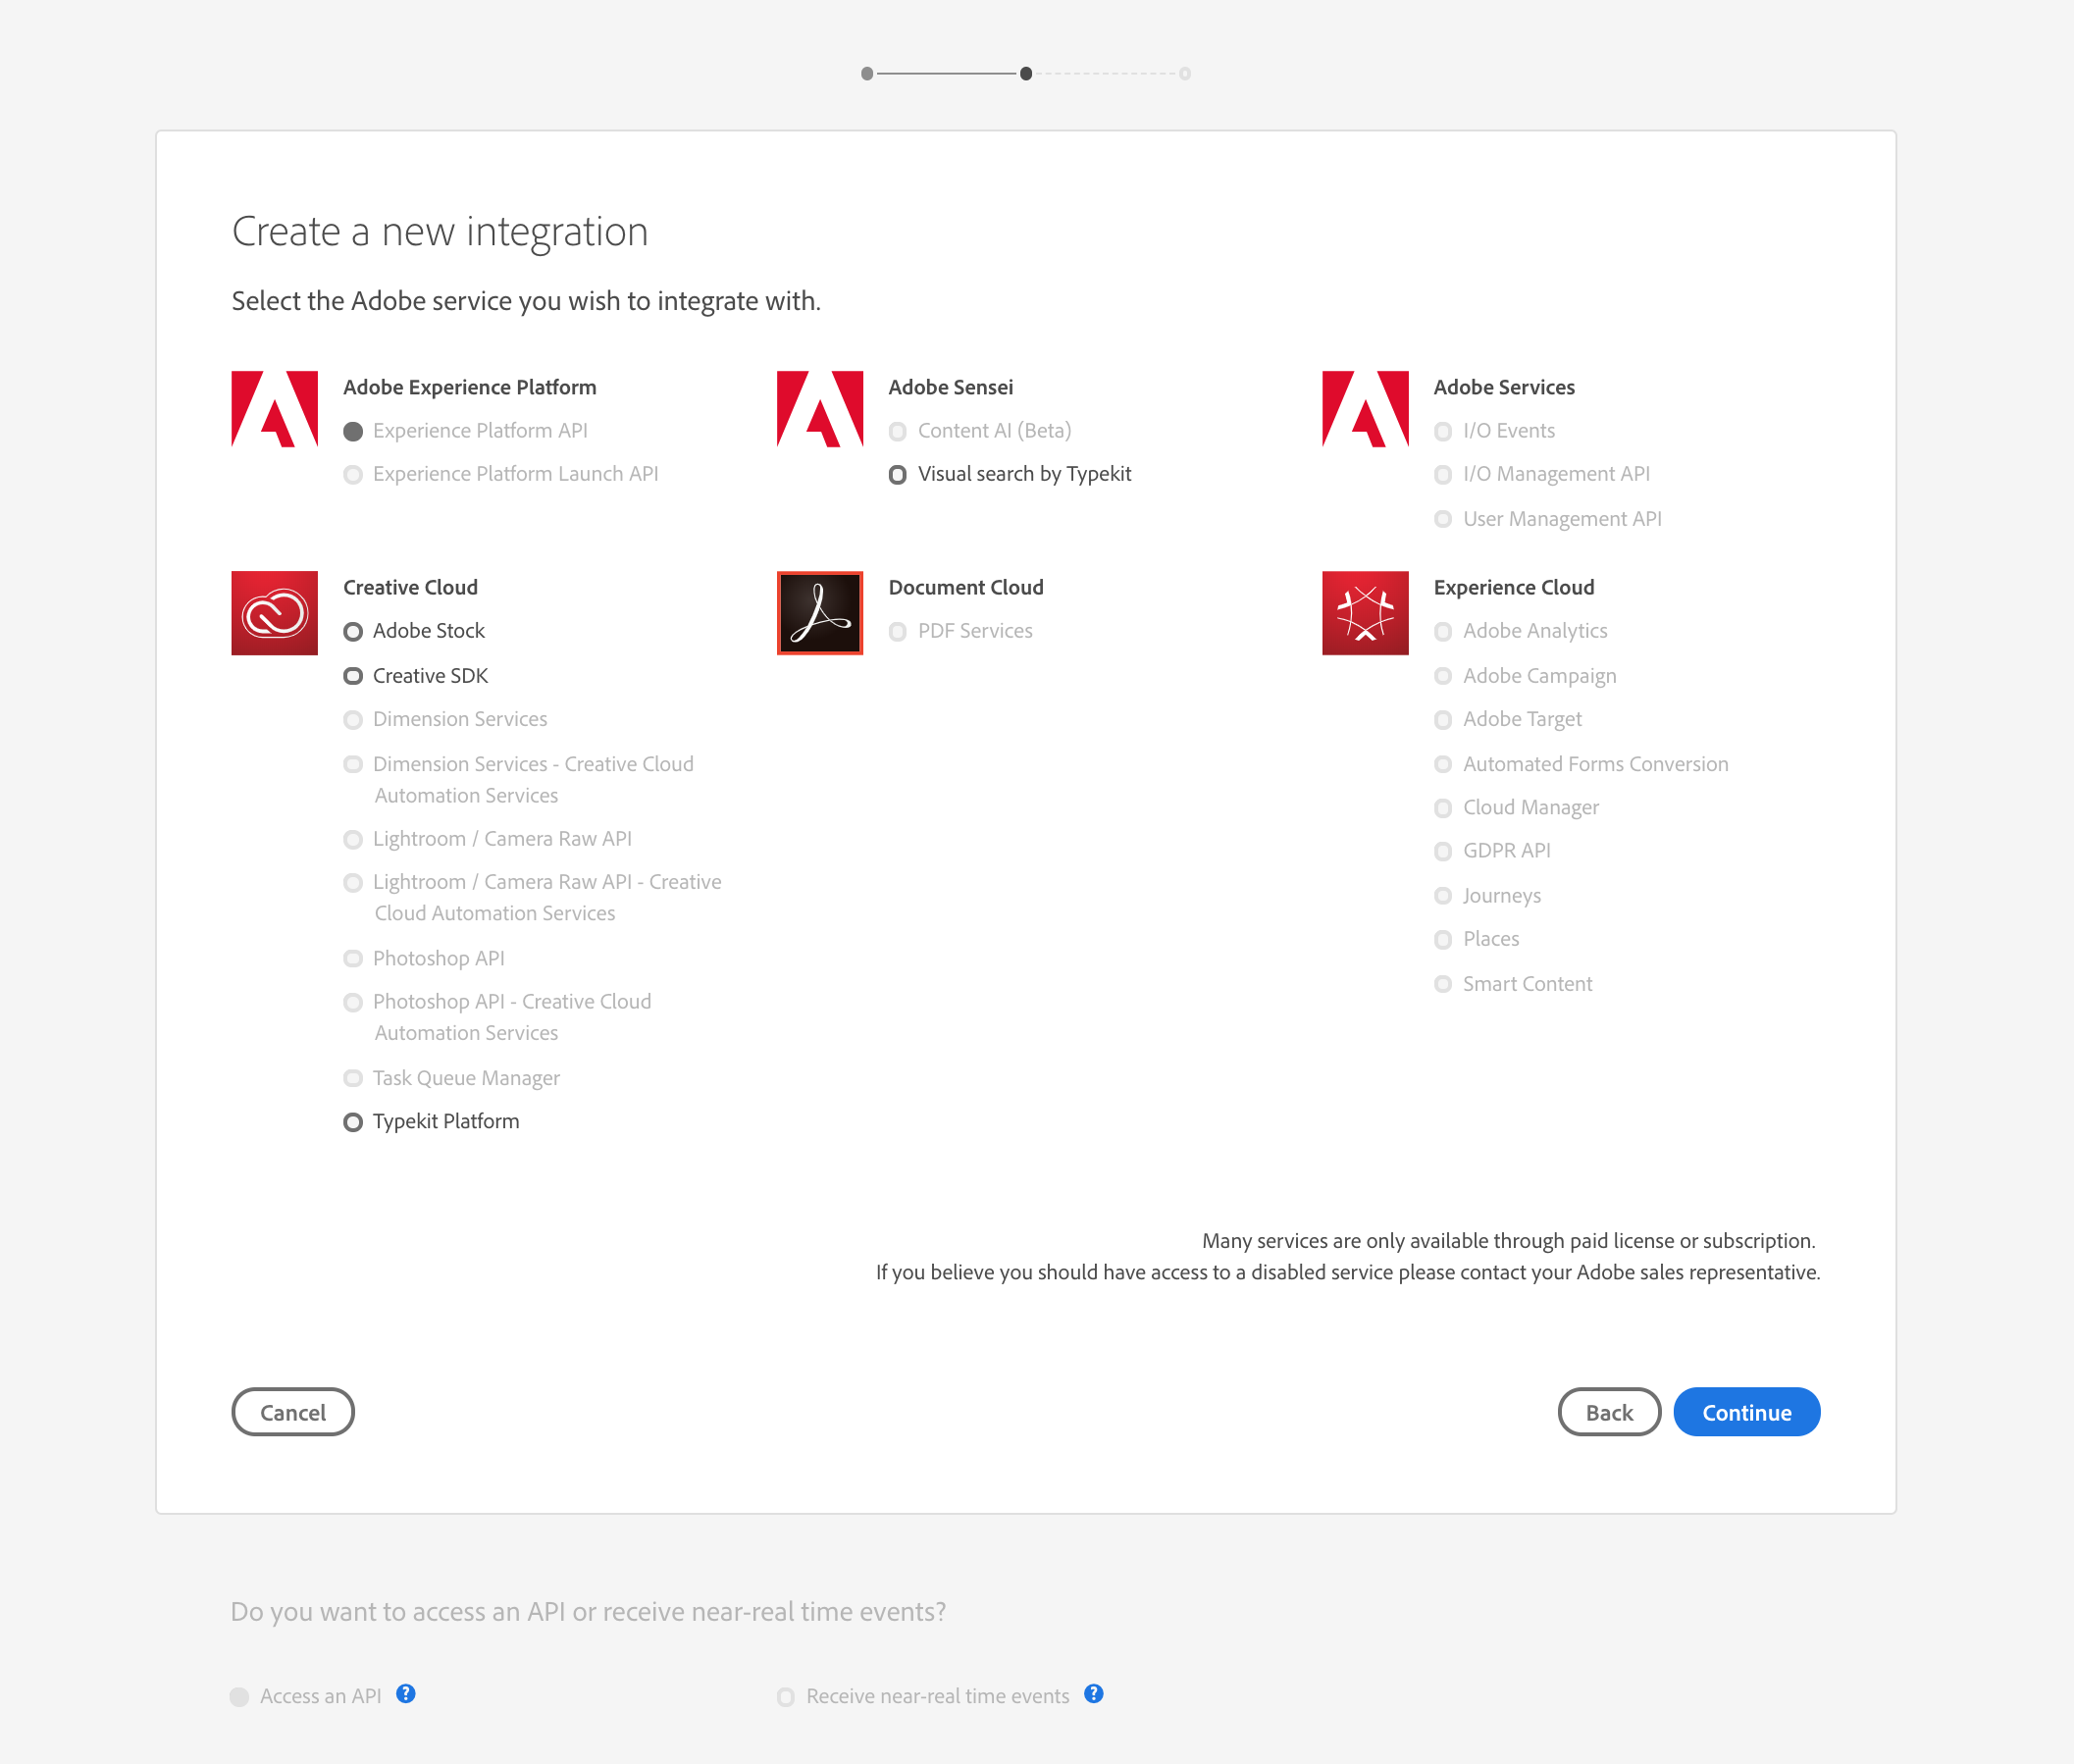 Authenticate and access Adobe Experience Platform APIs